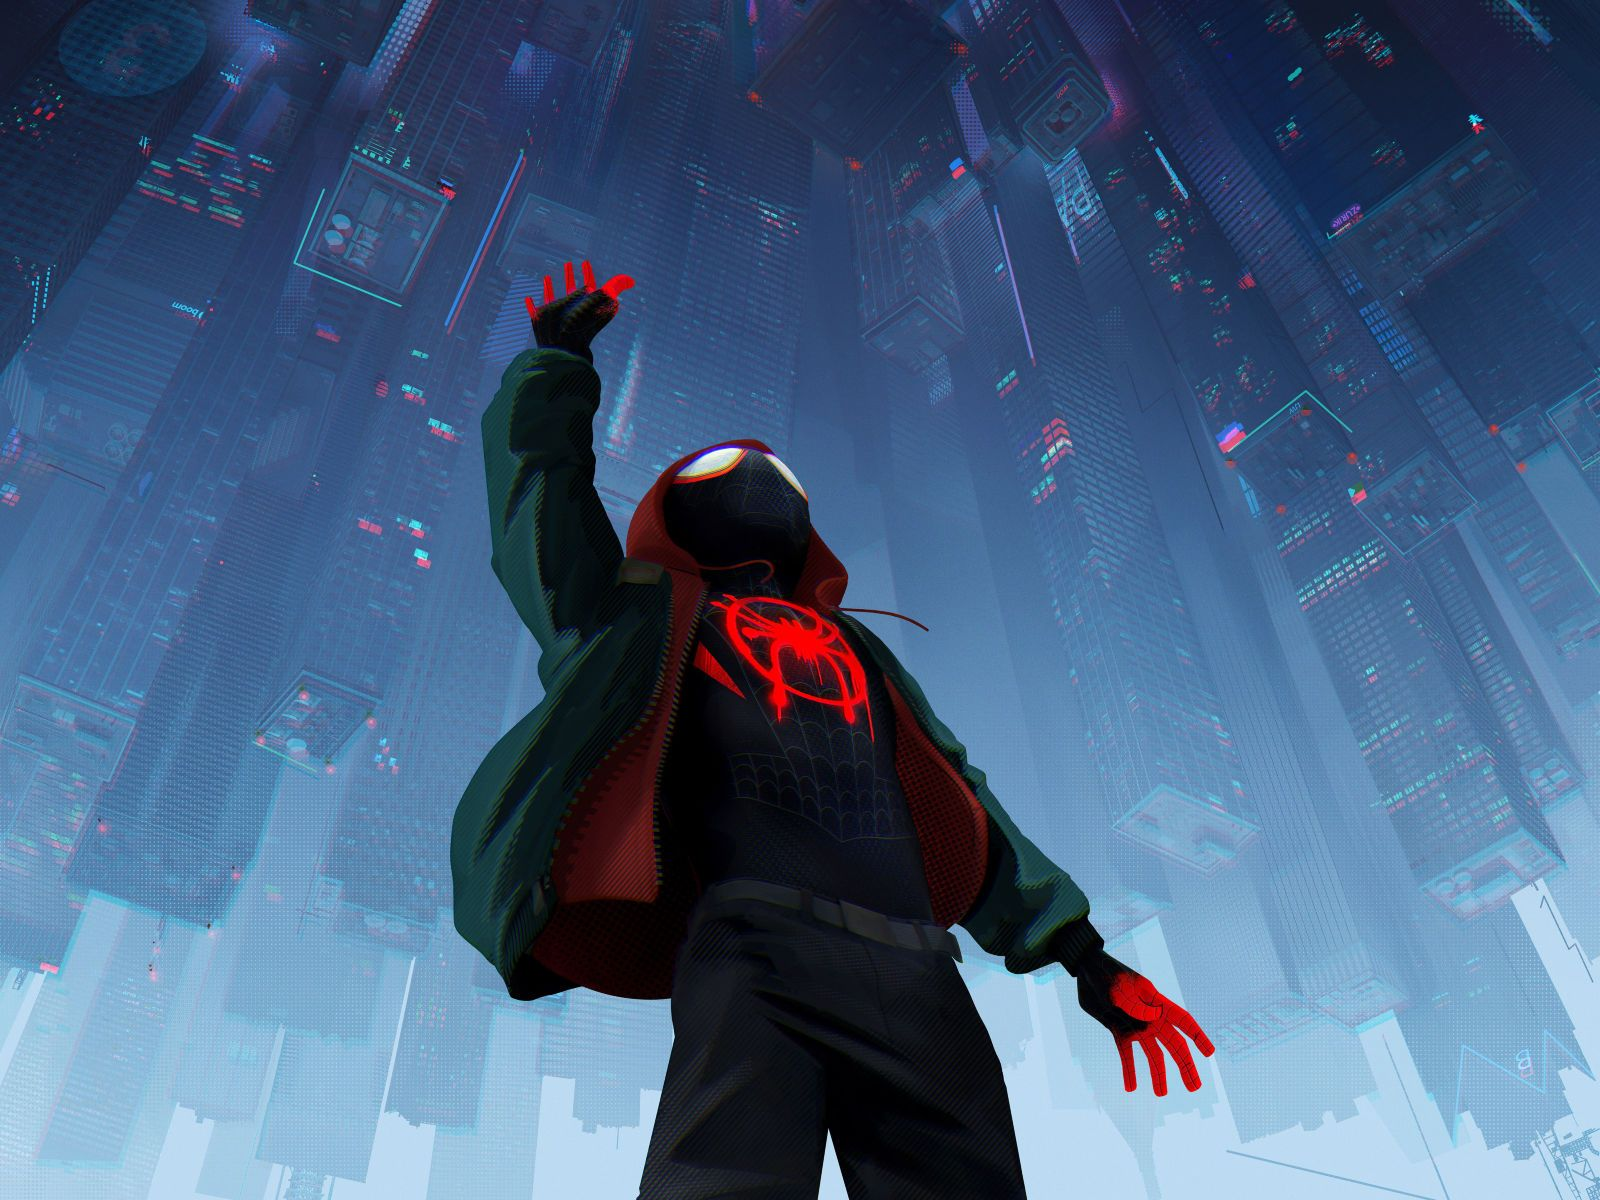 Spiderman Into The Spiderverse 2018 Official Poster Hd 8k Wallpaper Spider Verse Spiderman Animated Movies